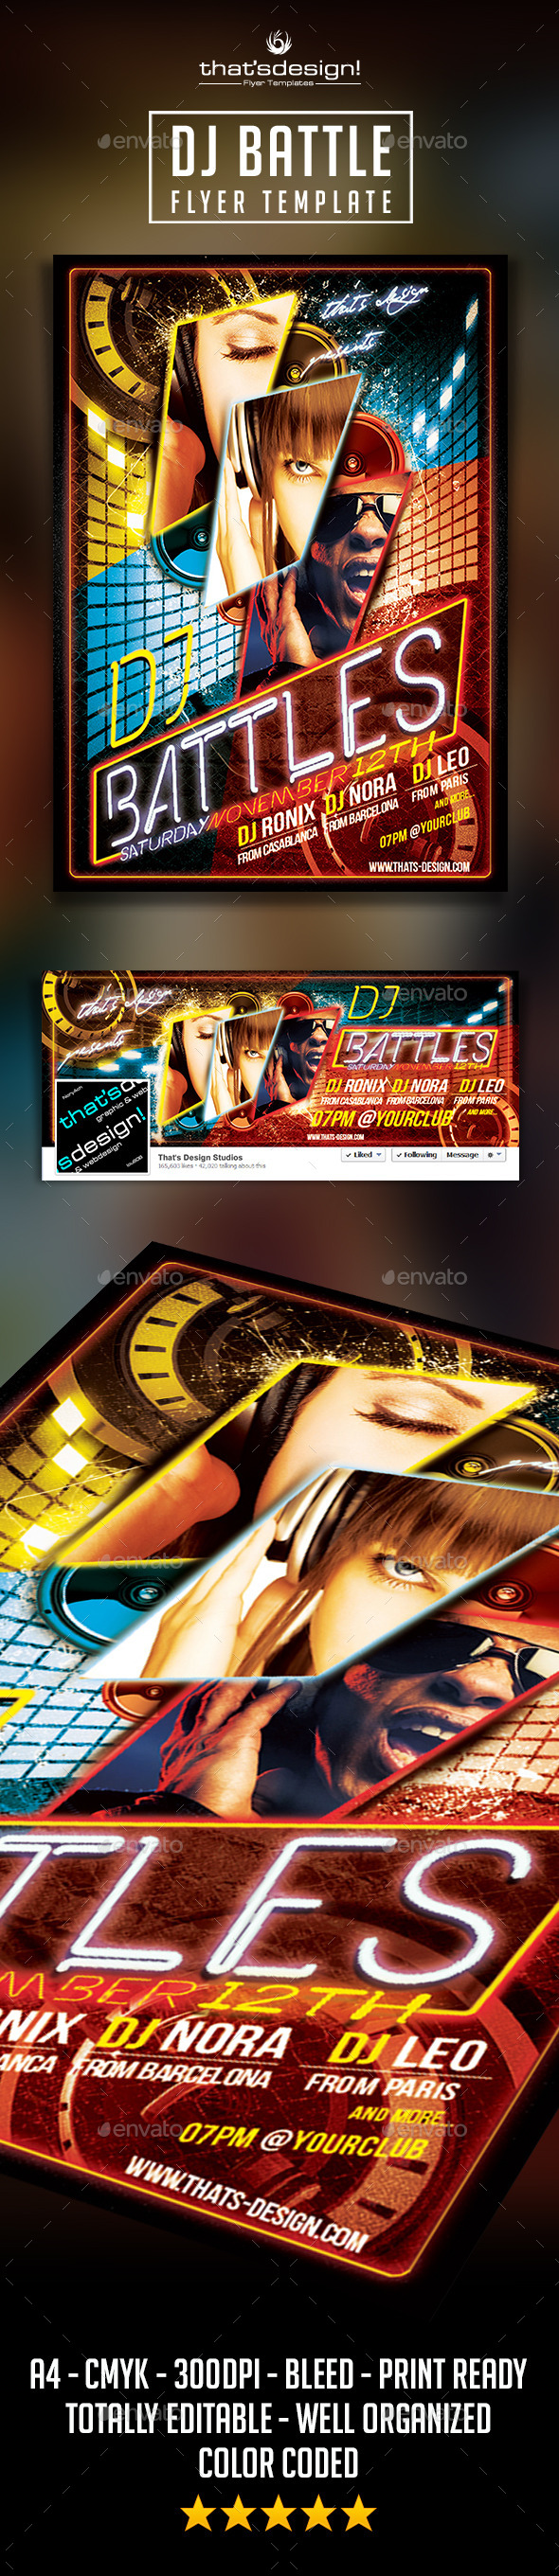 Dj Battle Flyer Template - Clubs & Parties Events